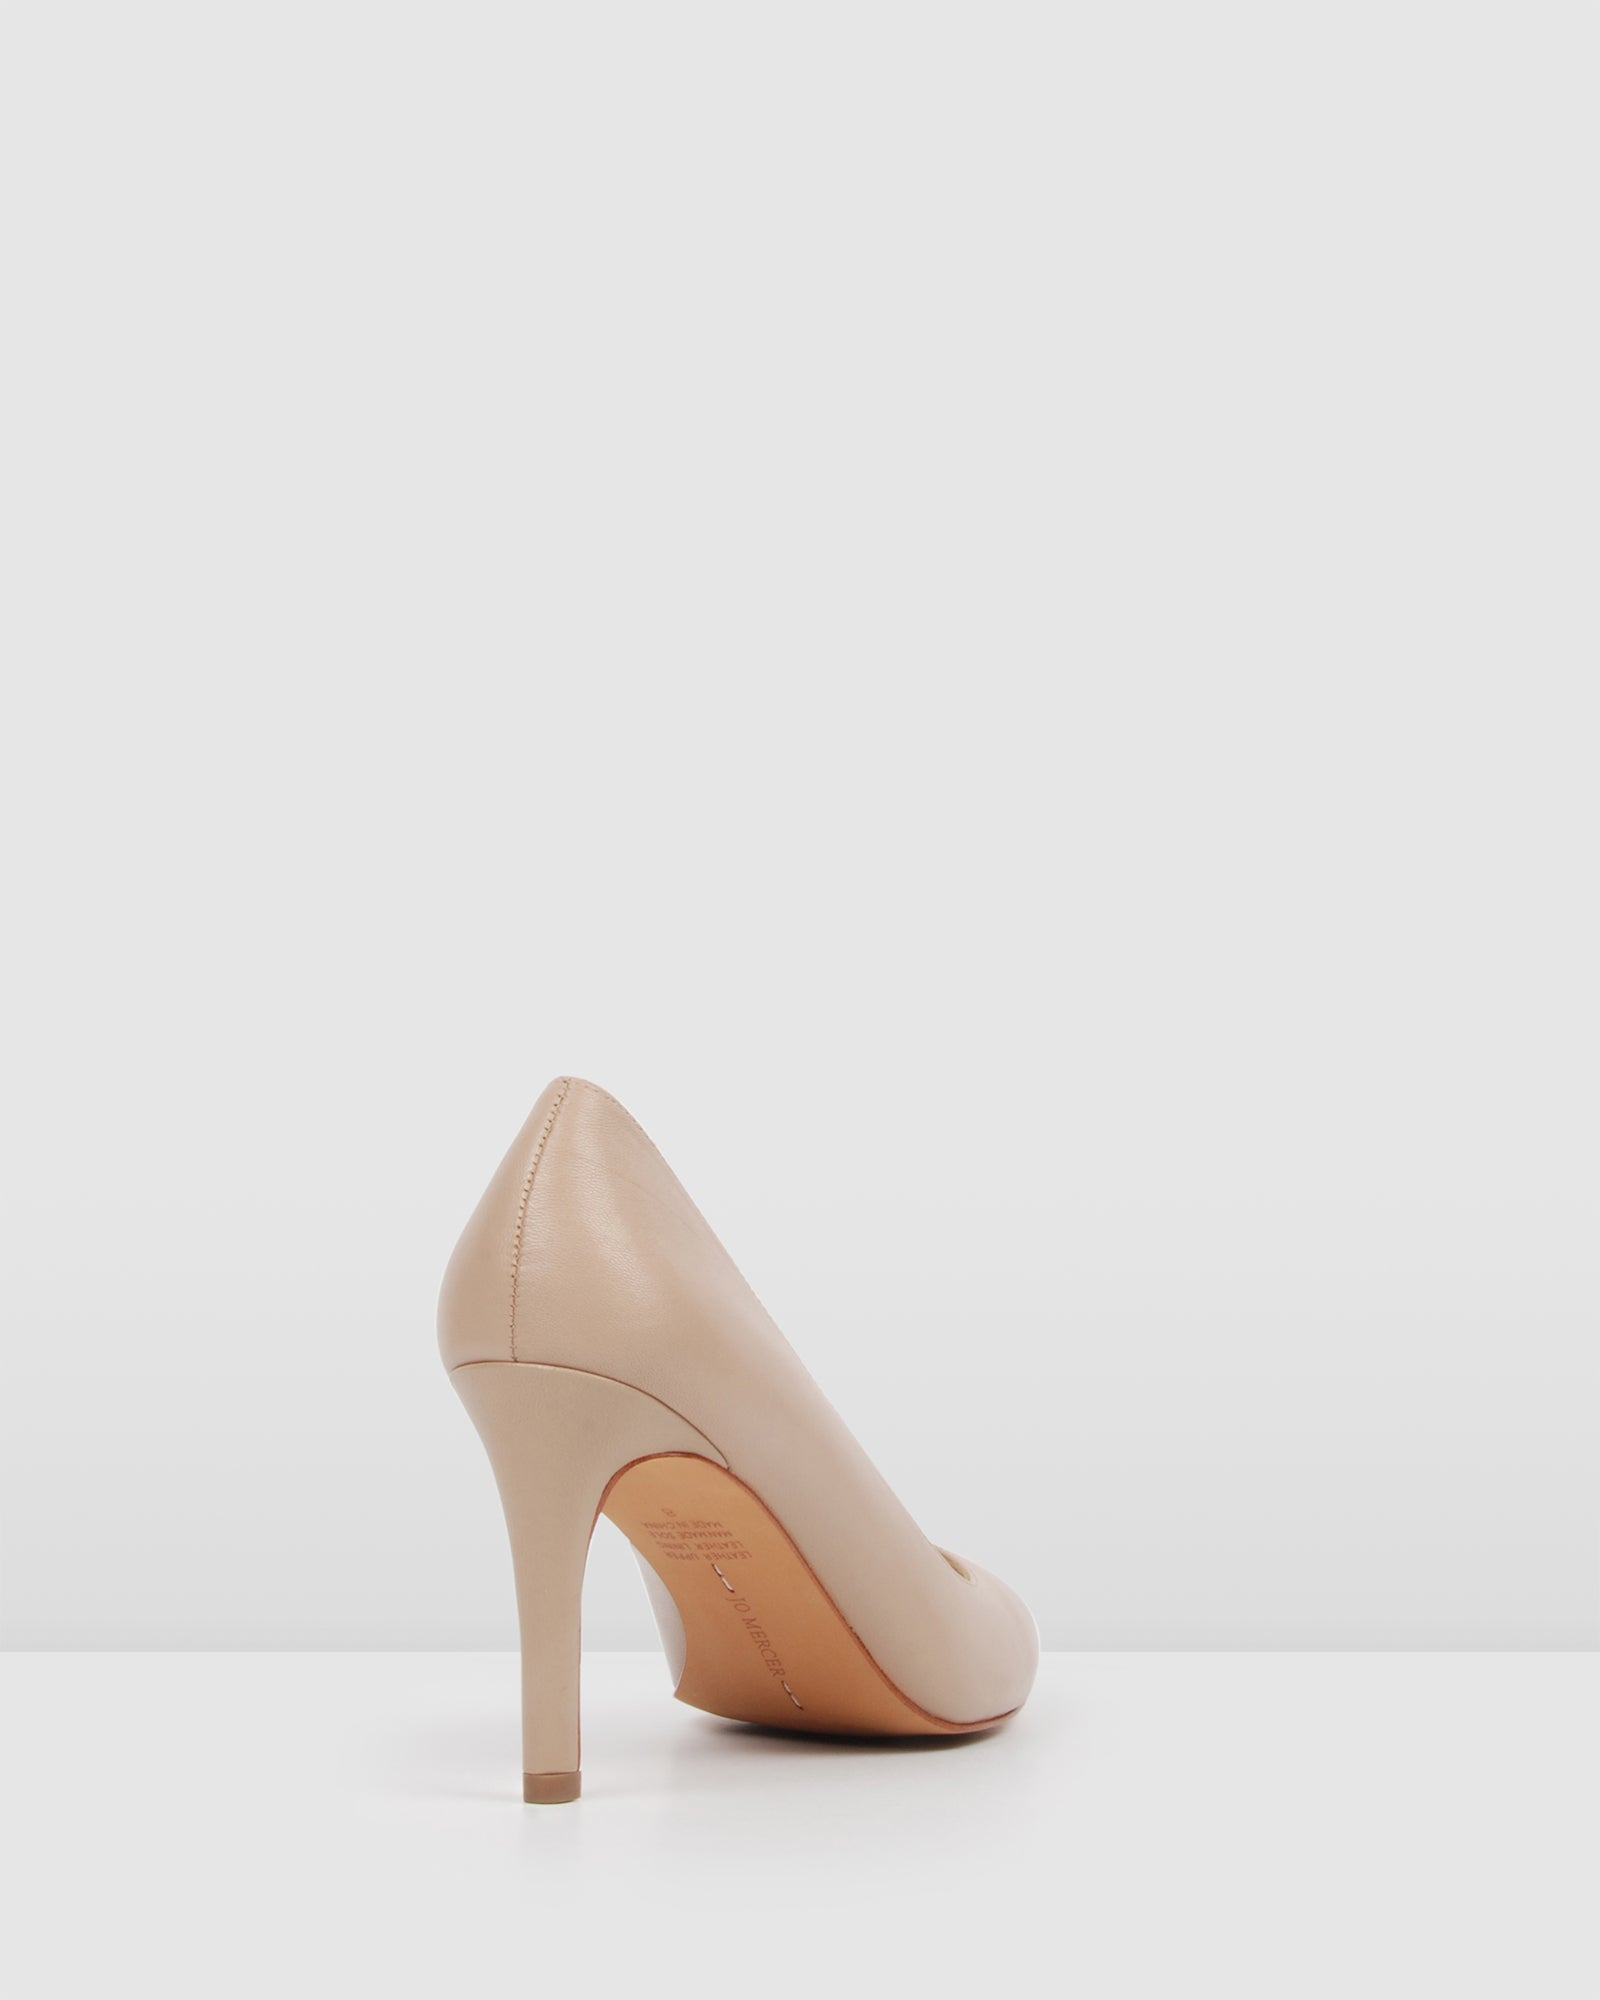 NIGELLA HIGH HEELS LIGHT BEIGE LEATHER